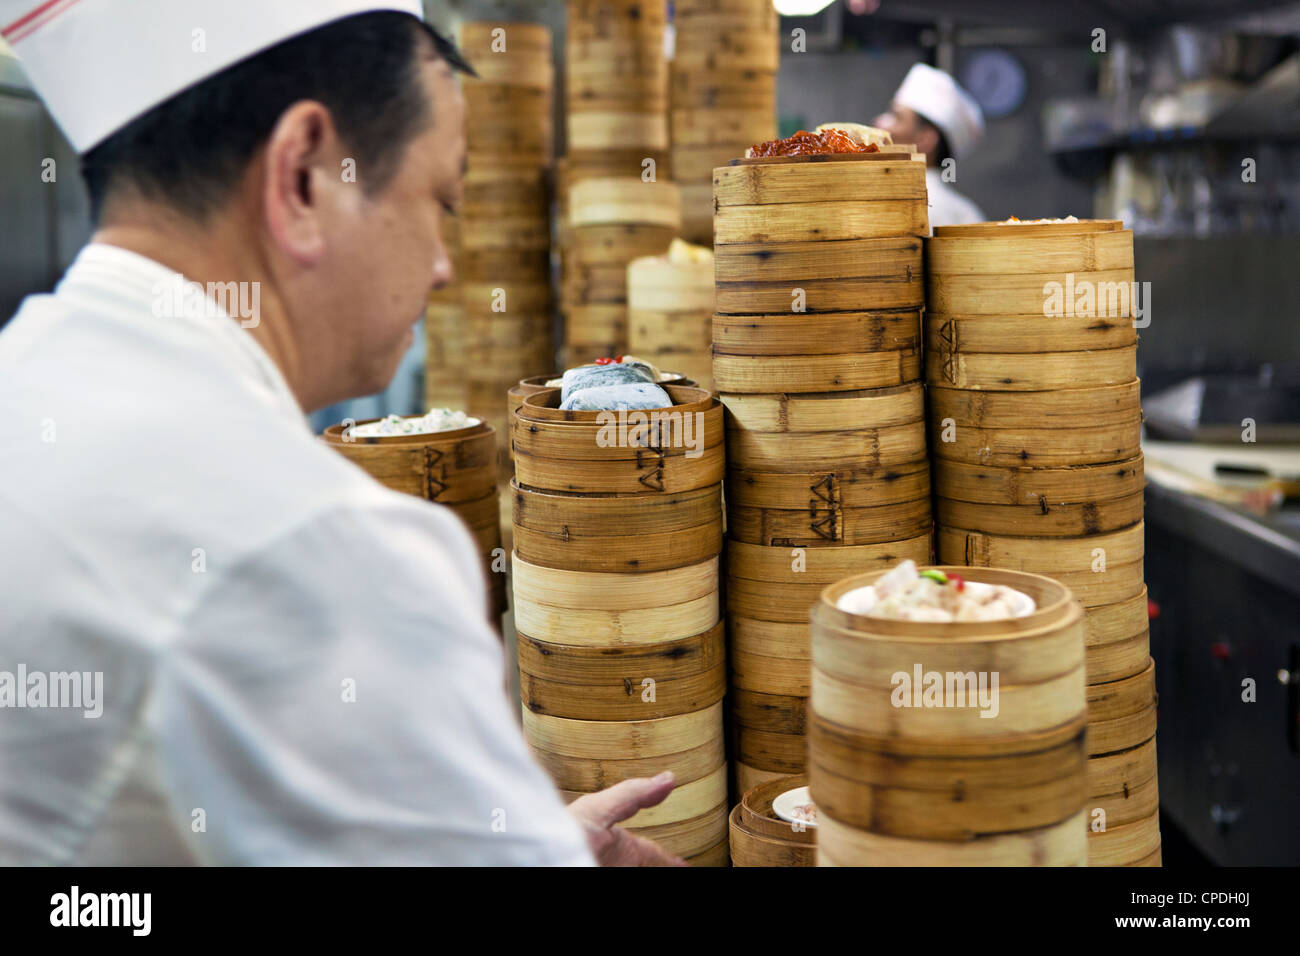 Dim sum preparation in a restaurant kitchen in Hong Kong, China, Asia - Stock Image